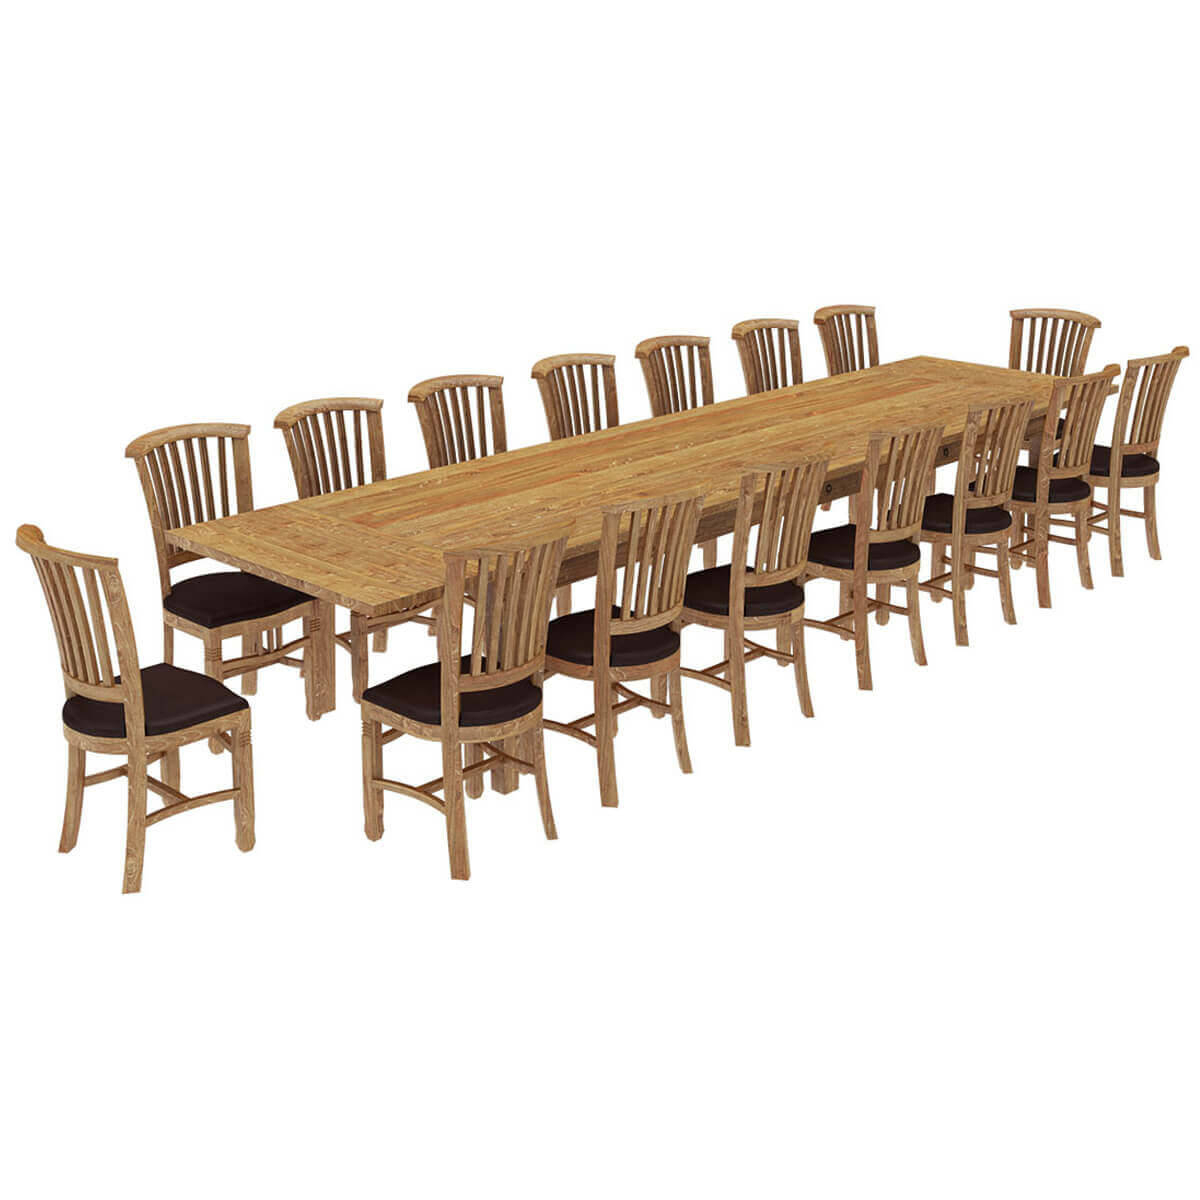 Enchanting Rustic Reclaimed Wood Extending Dining Table Pertaining To Recent Hart Reclaimed Wood Extending Dining Tables (Image 7 of 25)